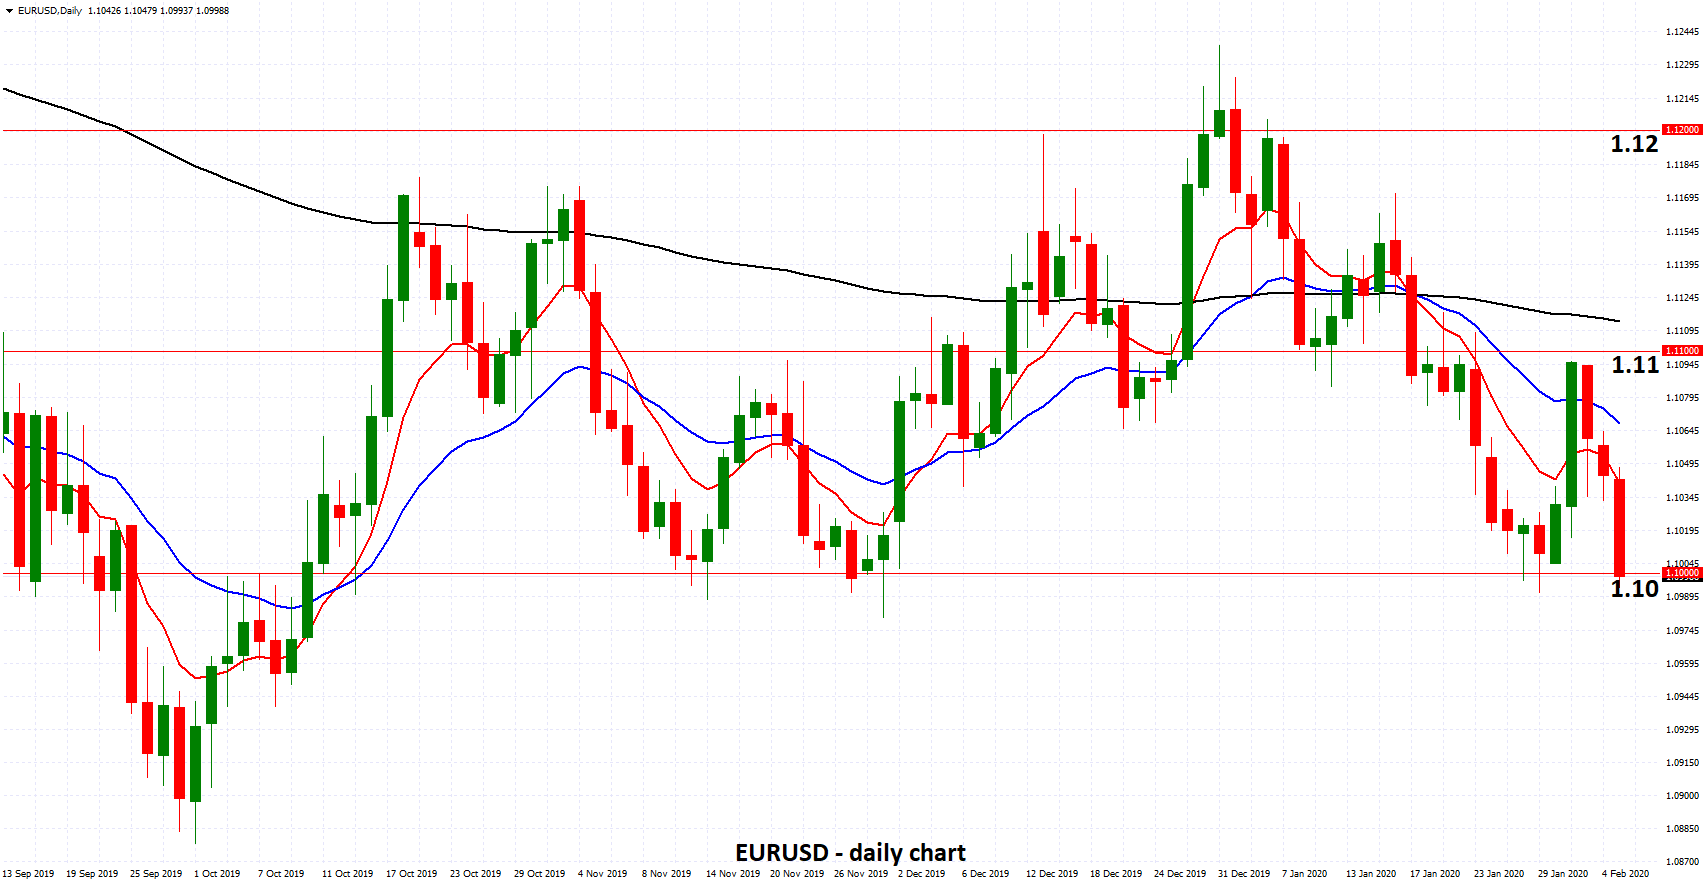 EURUSD - Drops to Support at Key 1.10 on ECB Virus Comments